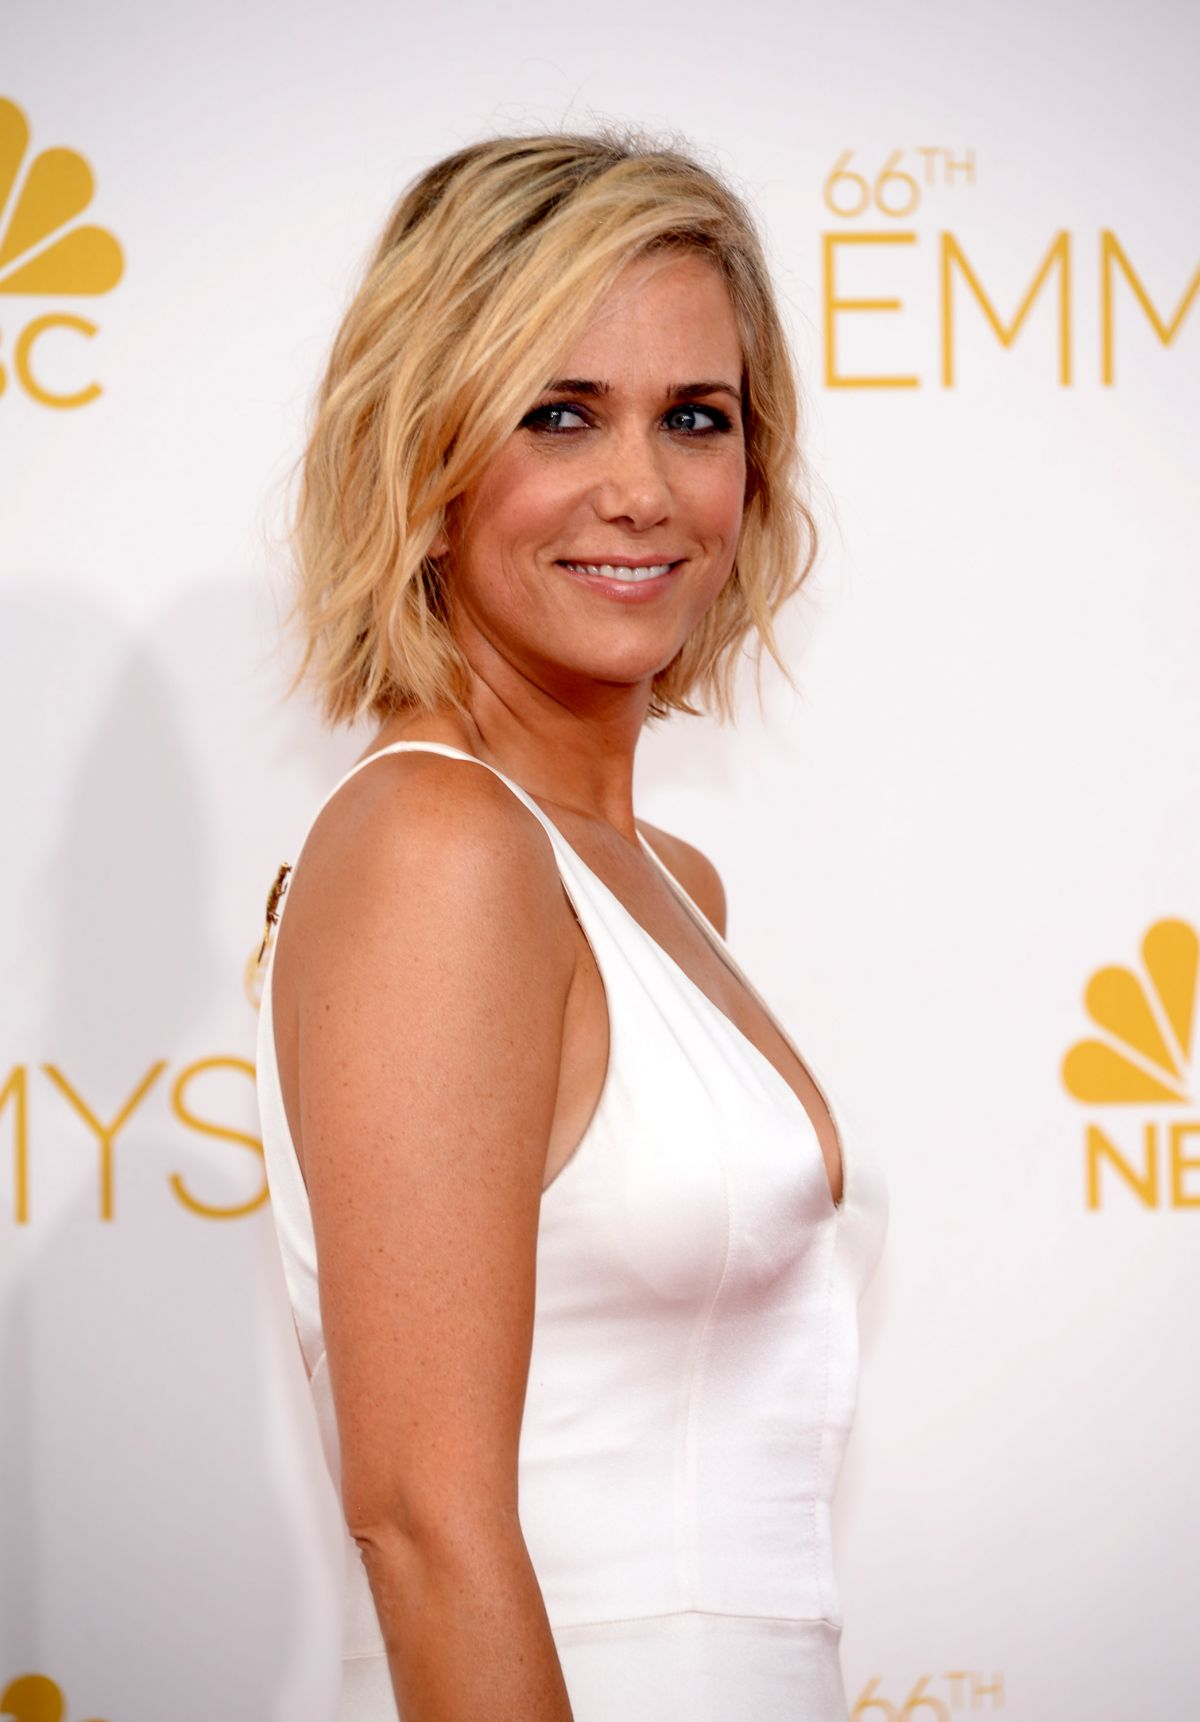 Kristen Wiig on Smile